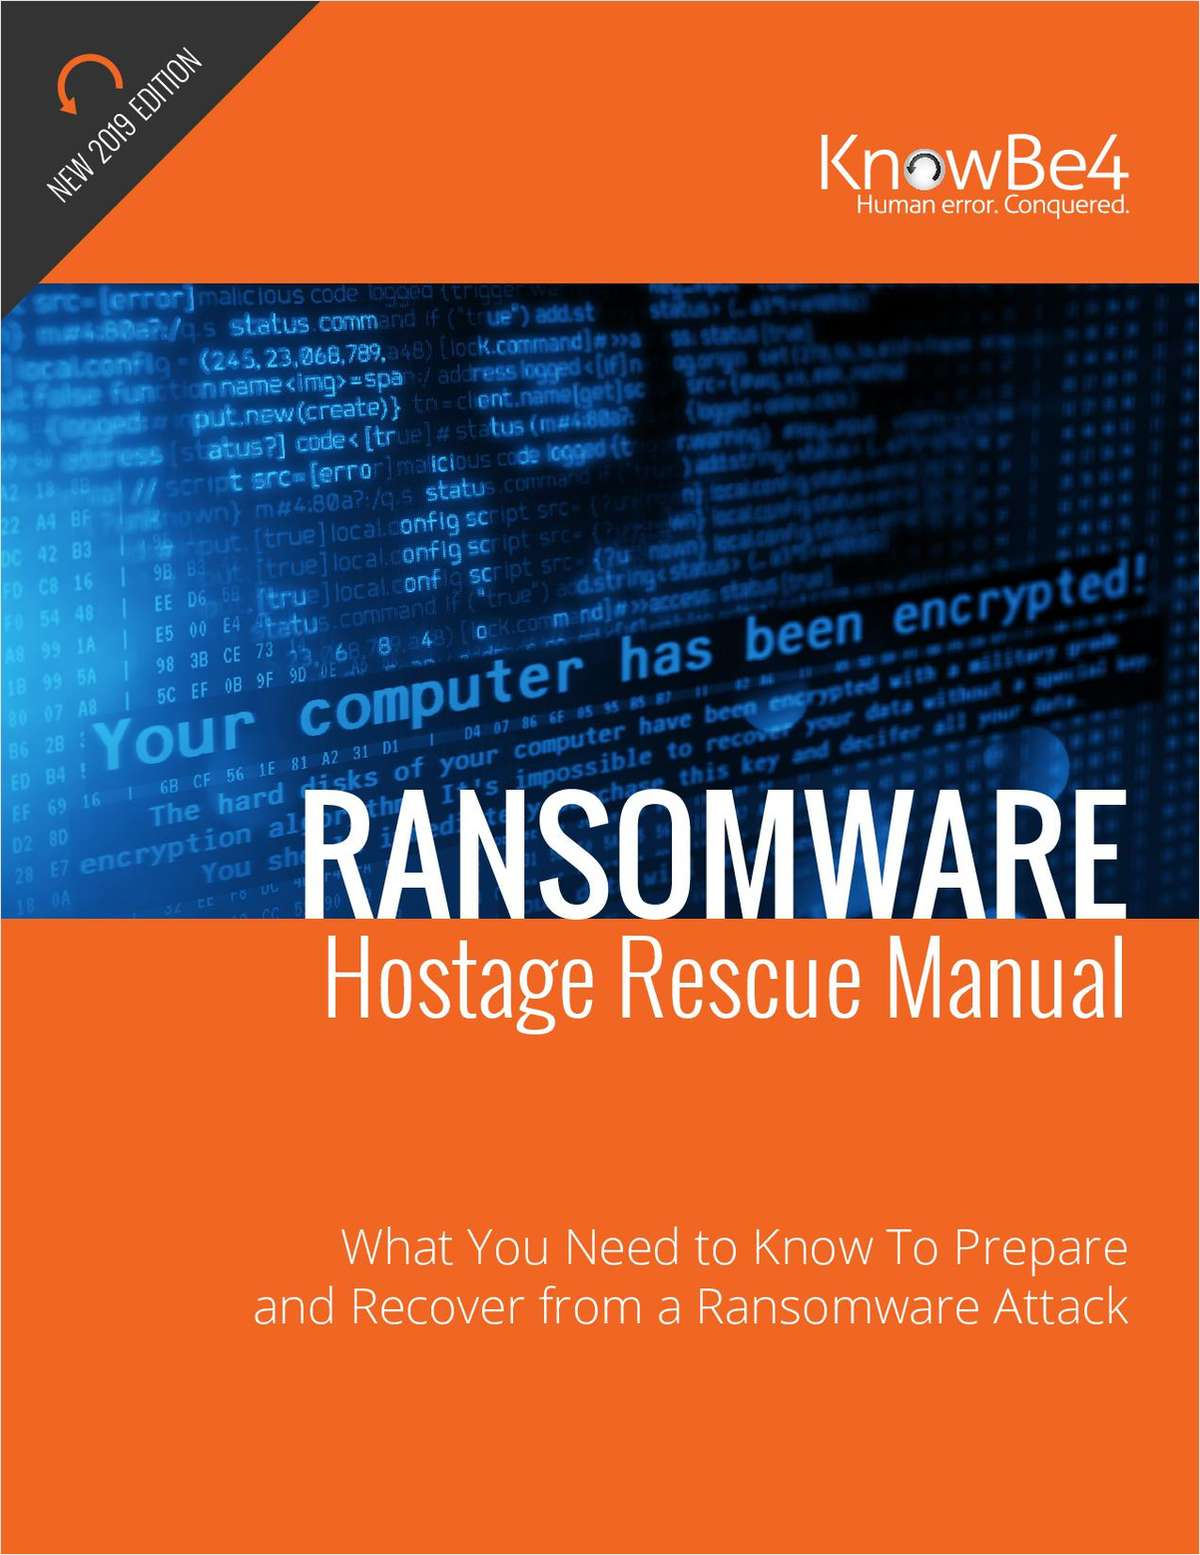 2019 Ransomware Hostage Rescue Manual